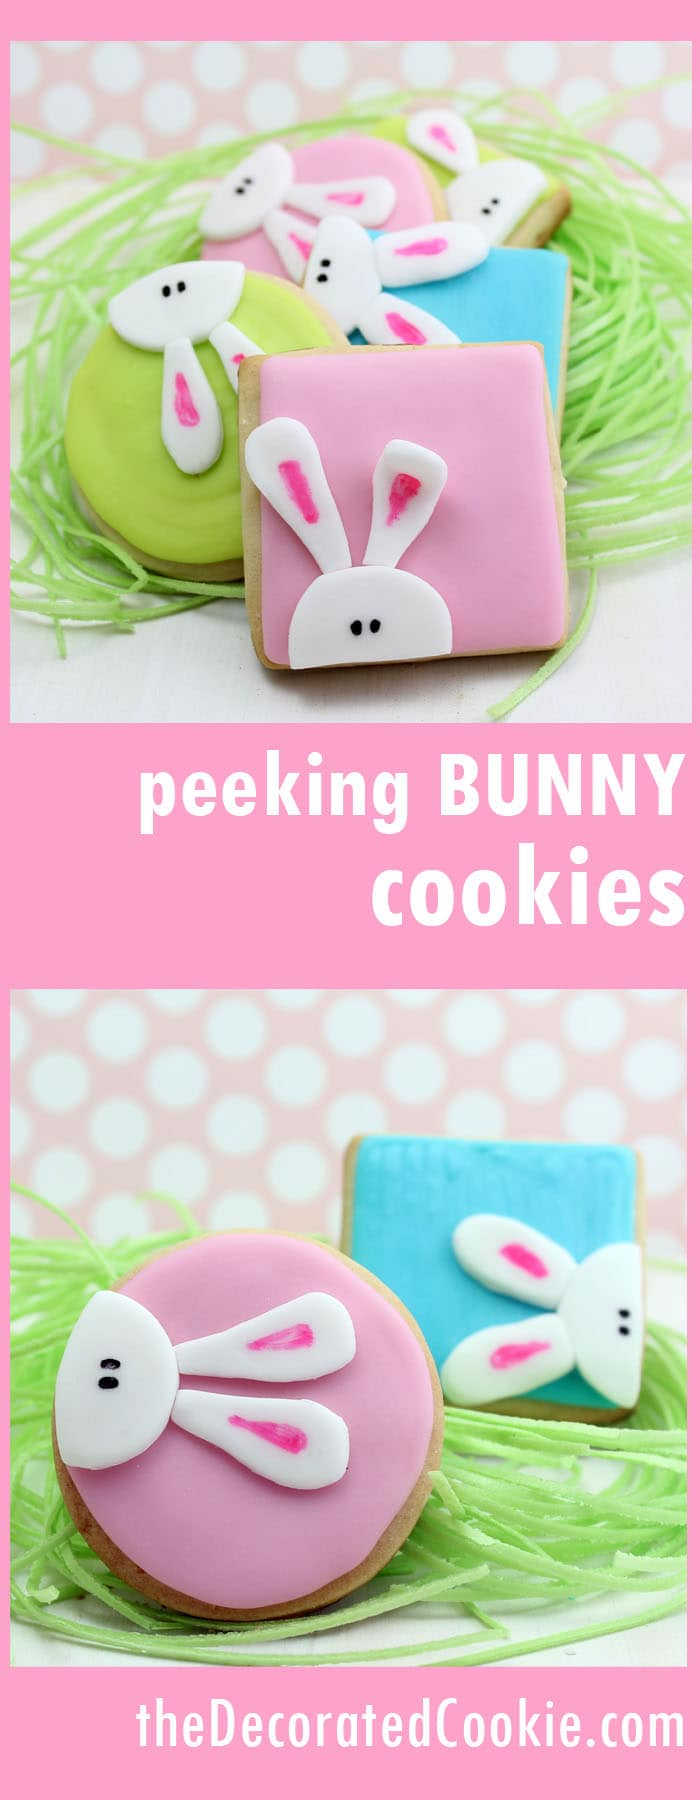 EASTER: peeking bunny cookies